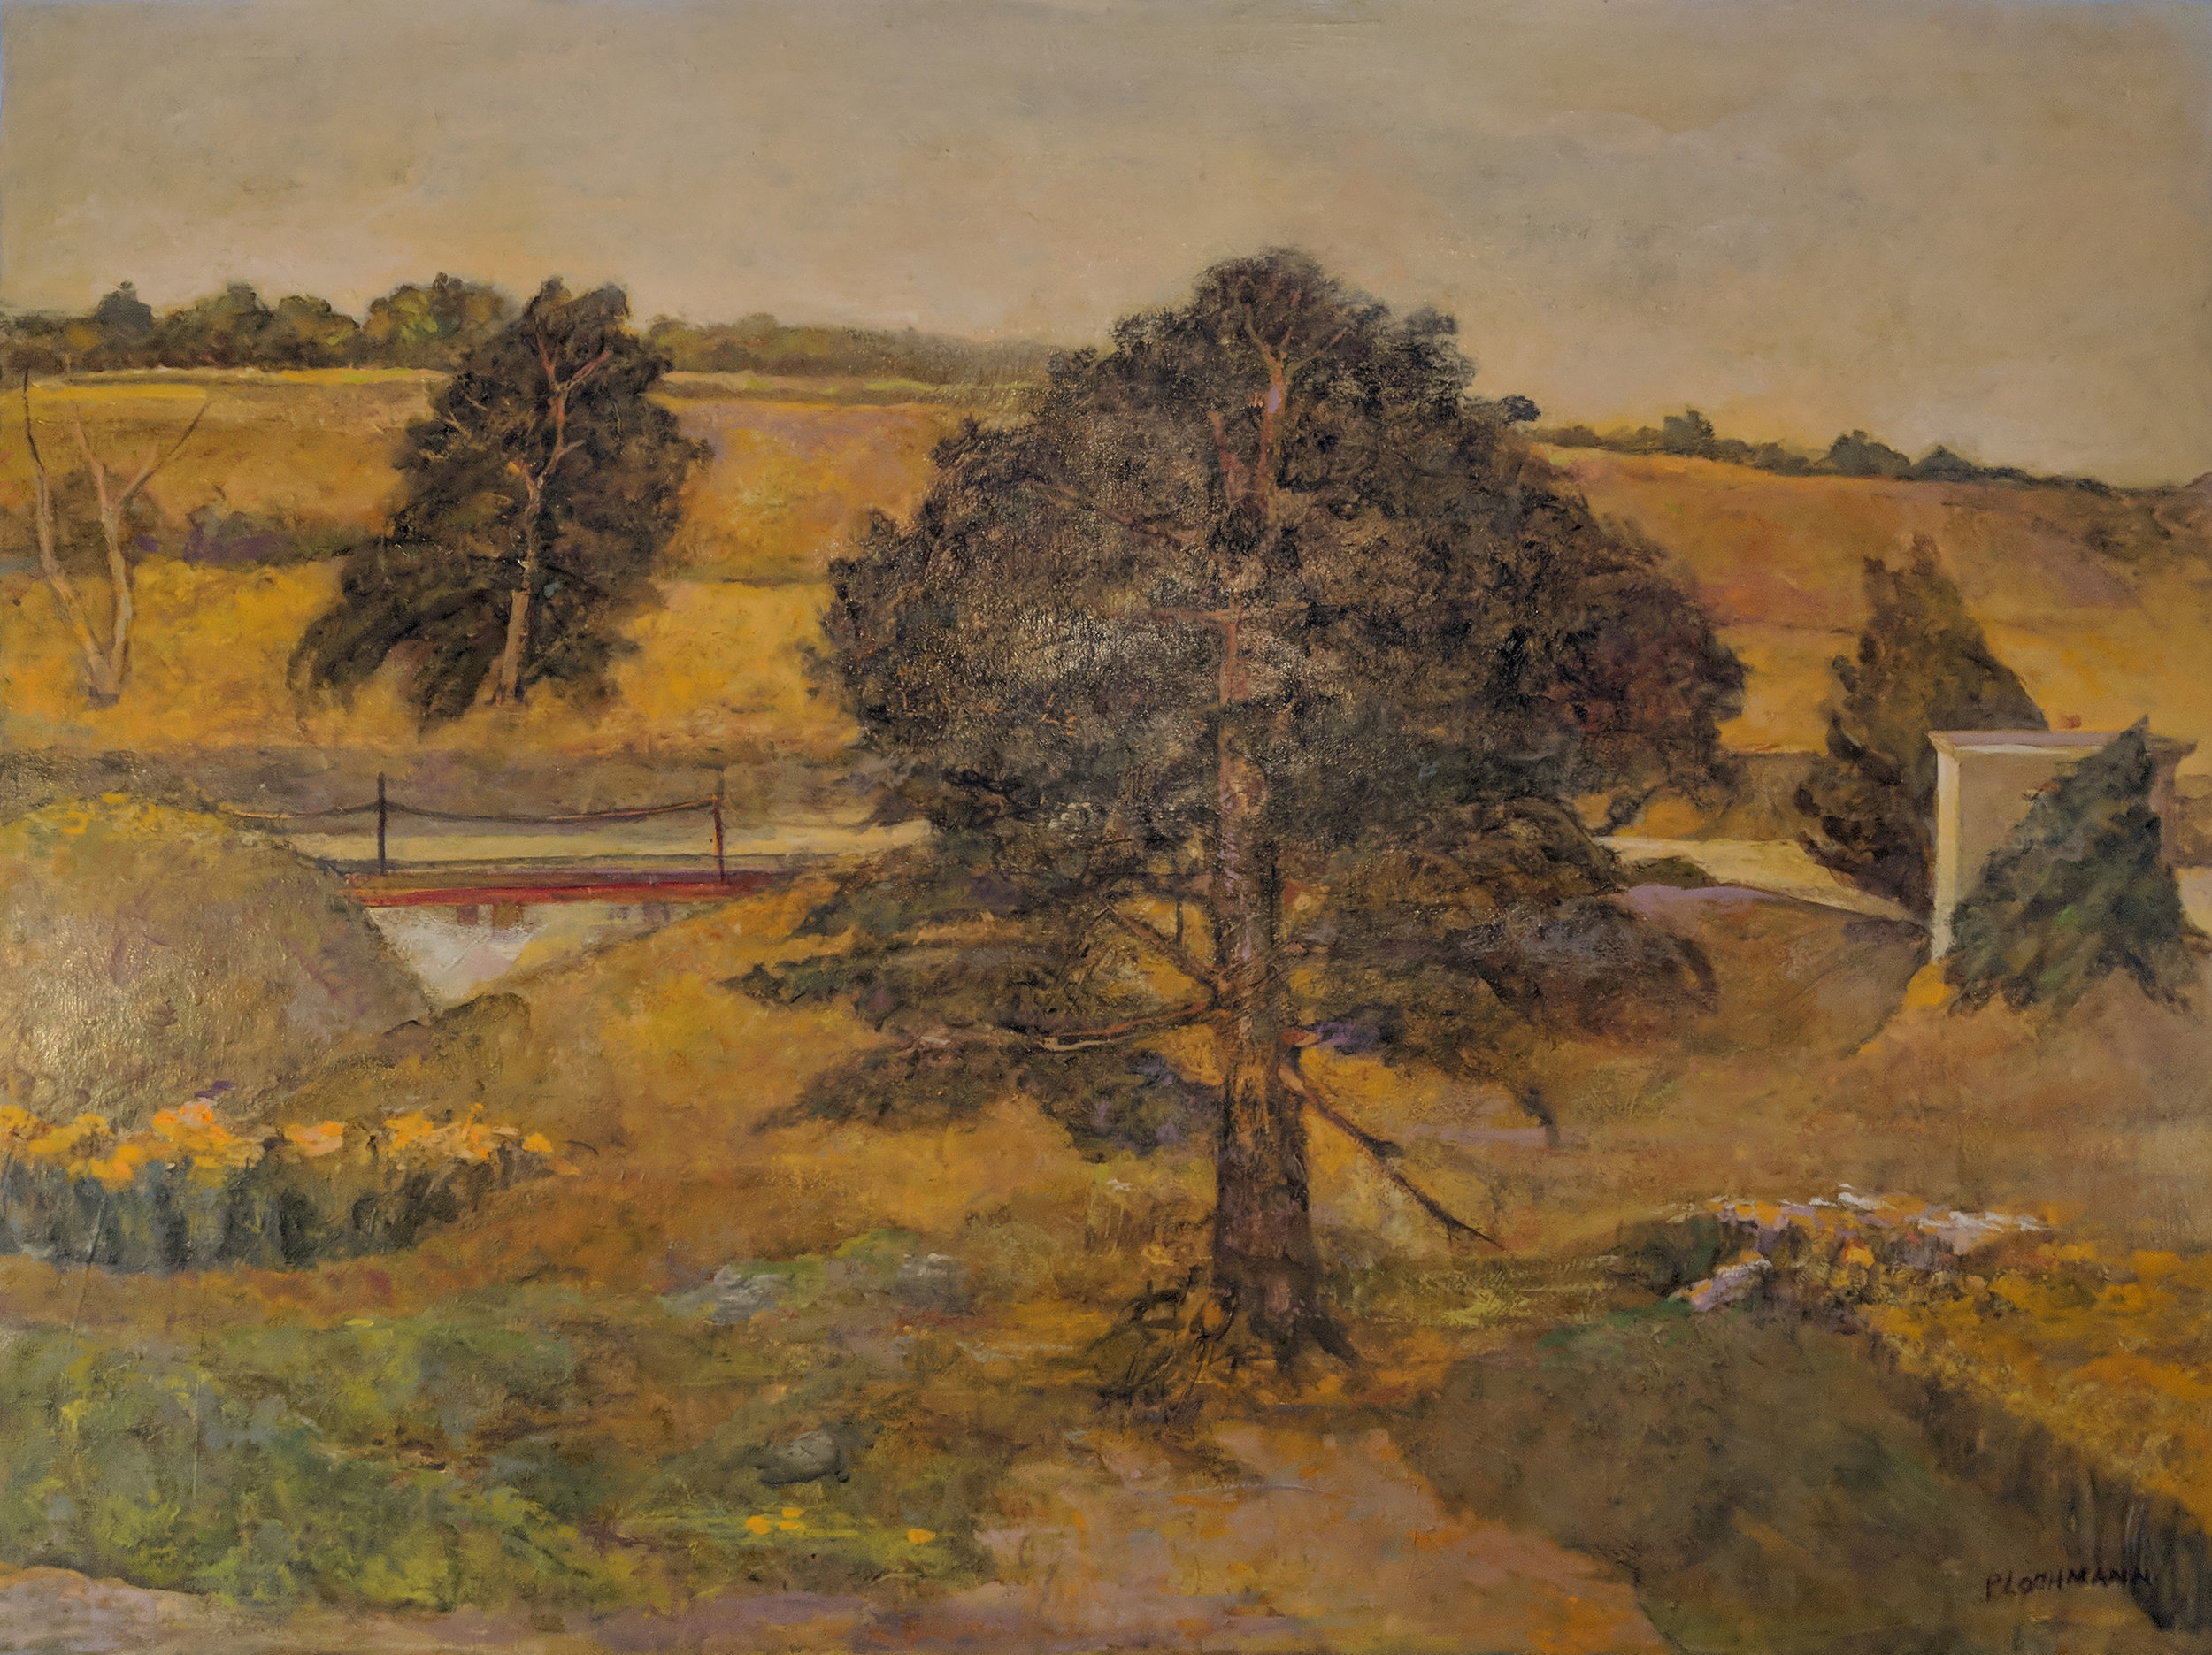 Carolyn Plochmann.   Late August-Springville Hill,  2002-3. Oil on canvas, 30 x 40 in.